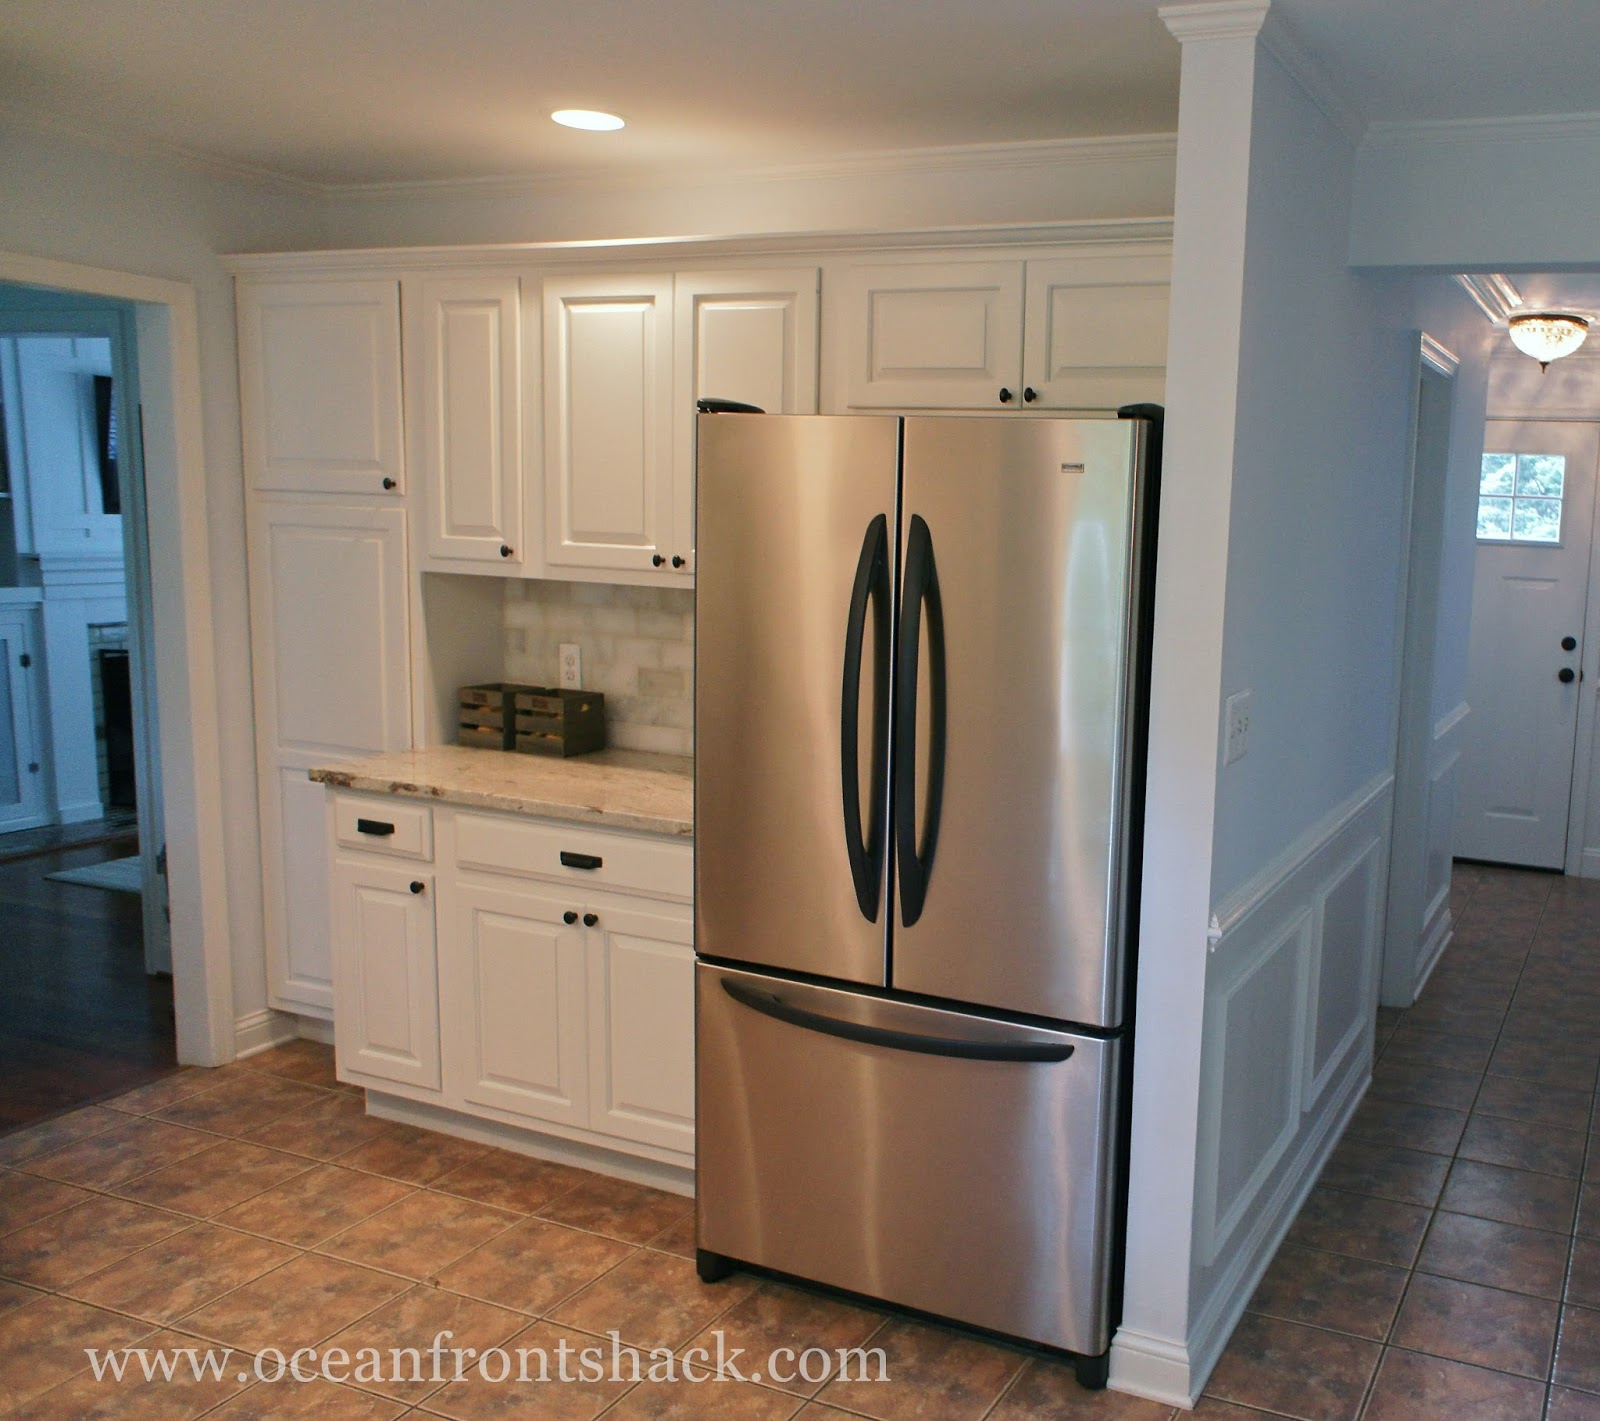 Kitchen cabinets satin or semi gloss for Best paint for kitchen cabinets oil or latex